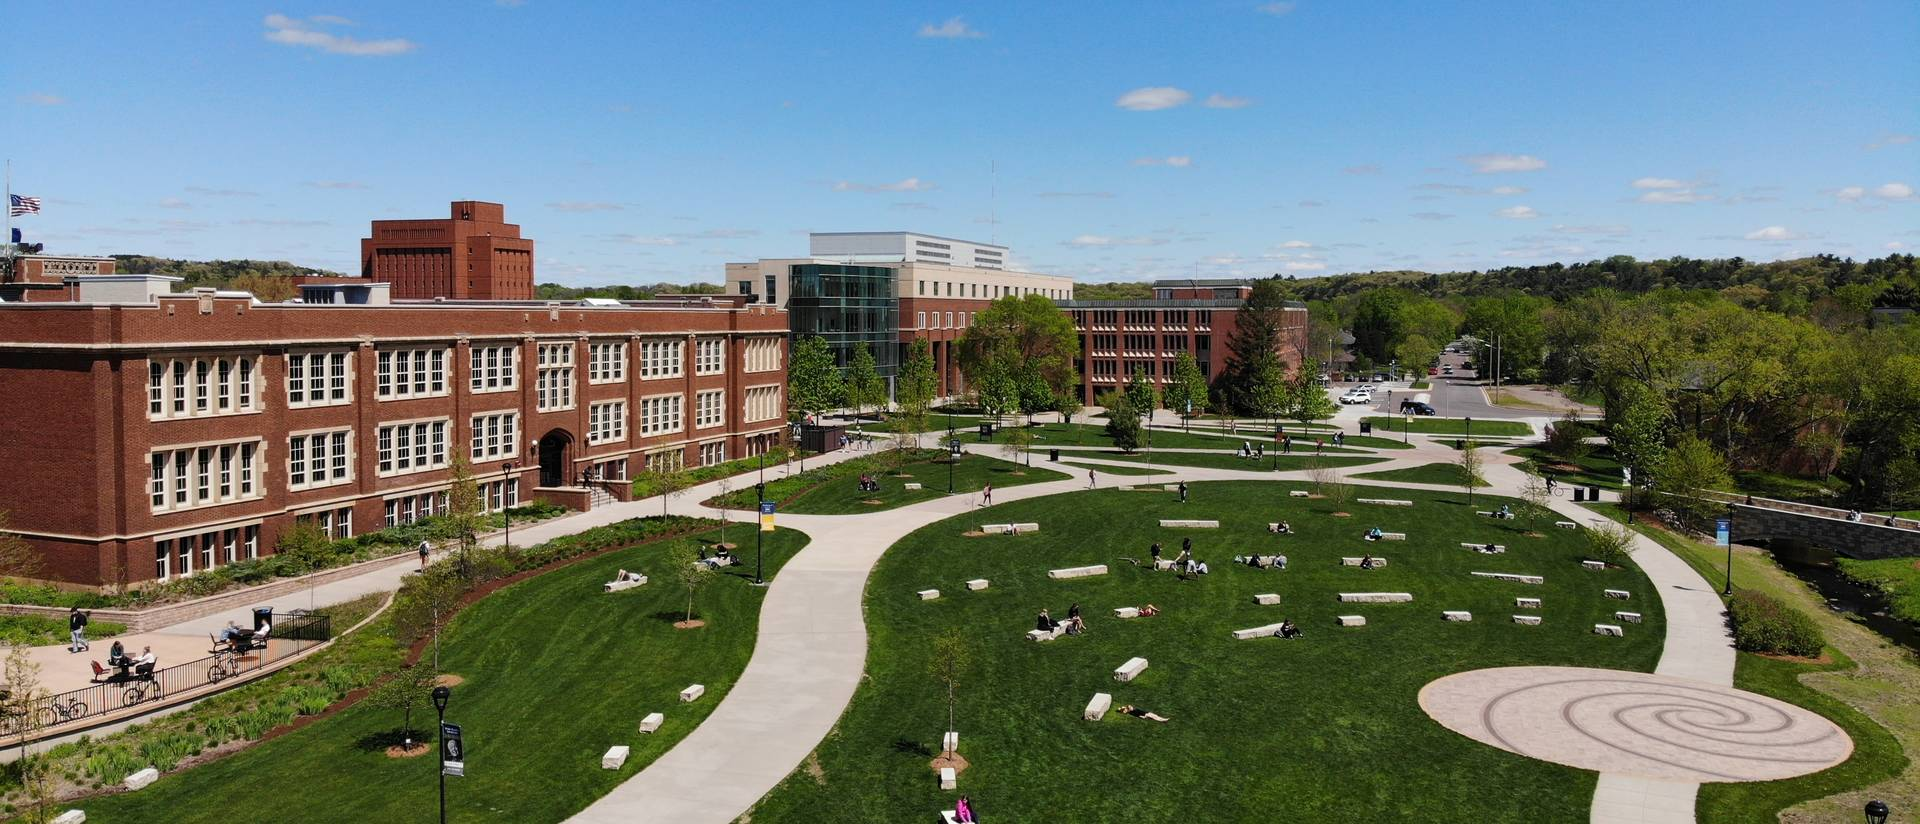 UW-Eau Claire campus mall May 2019